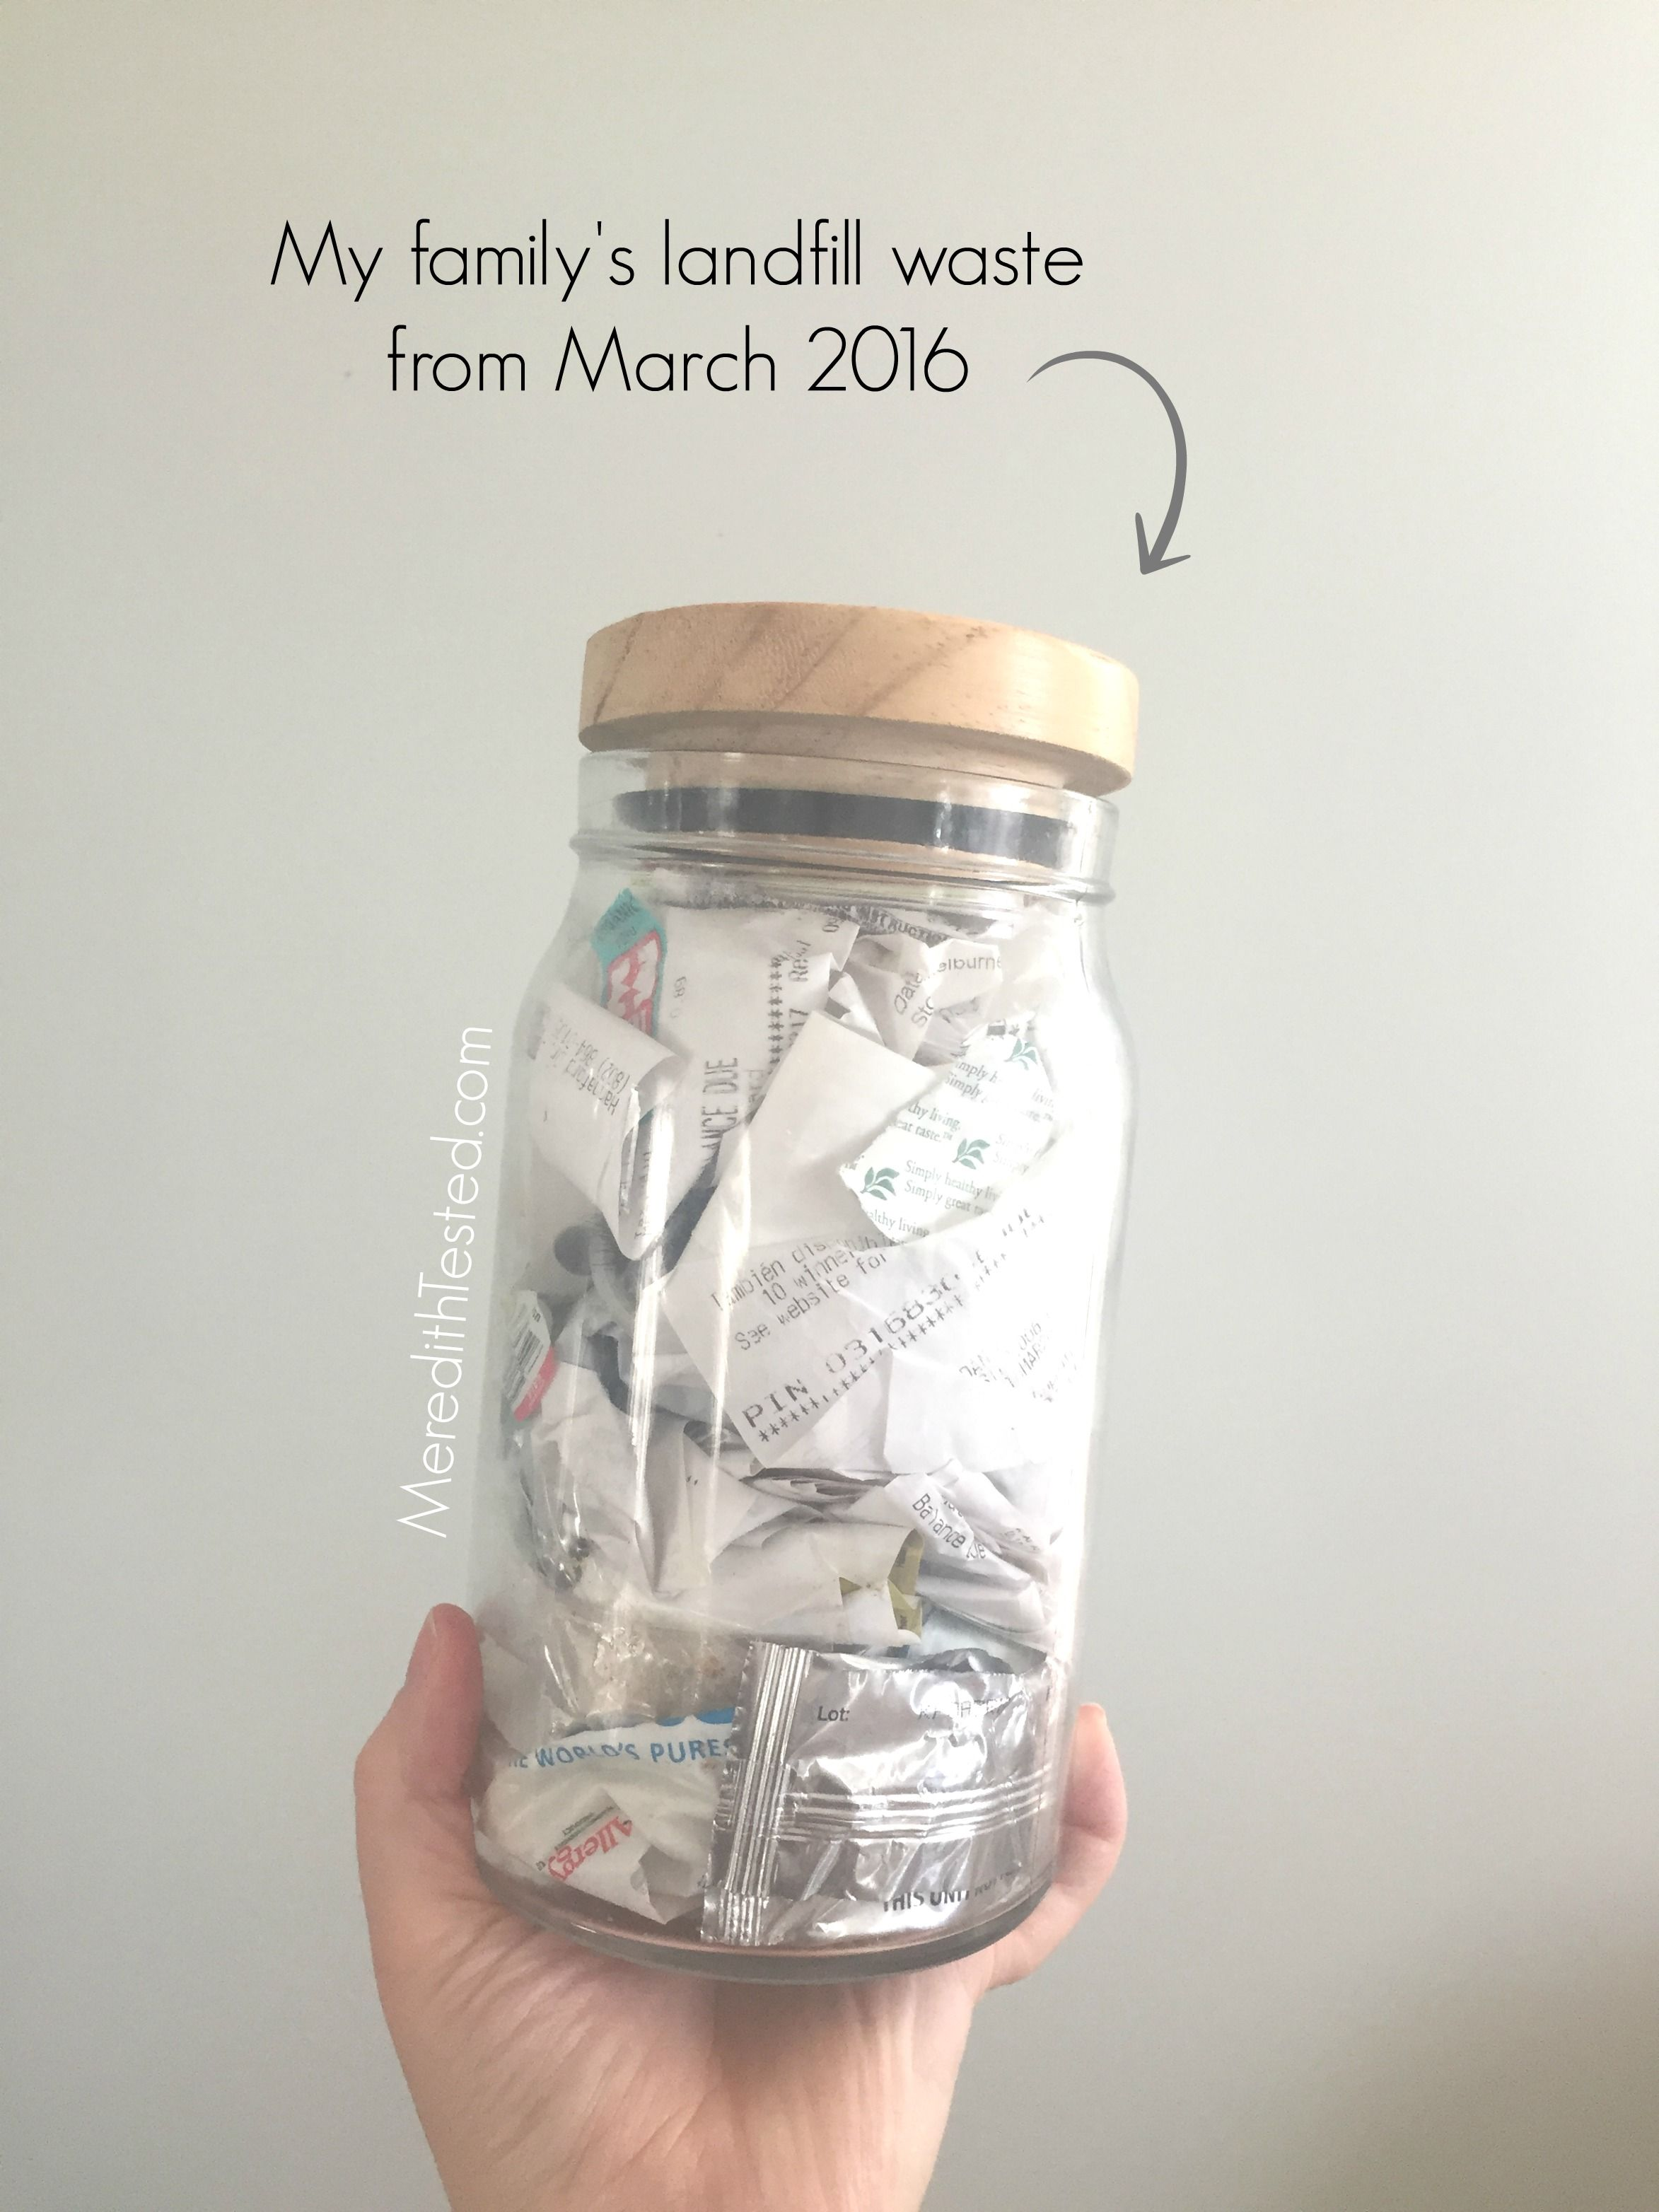 Three Months of Living Zero Waste | Zero waste, Waste, Zero waste lifestyle